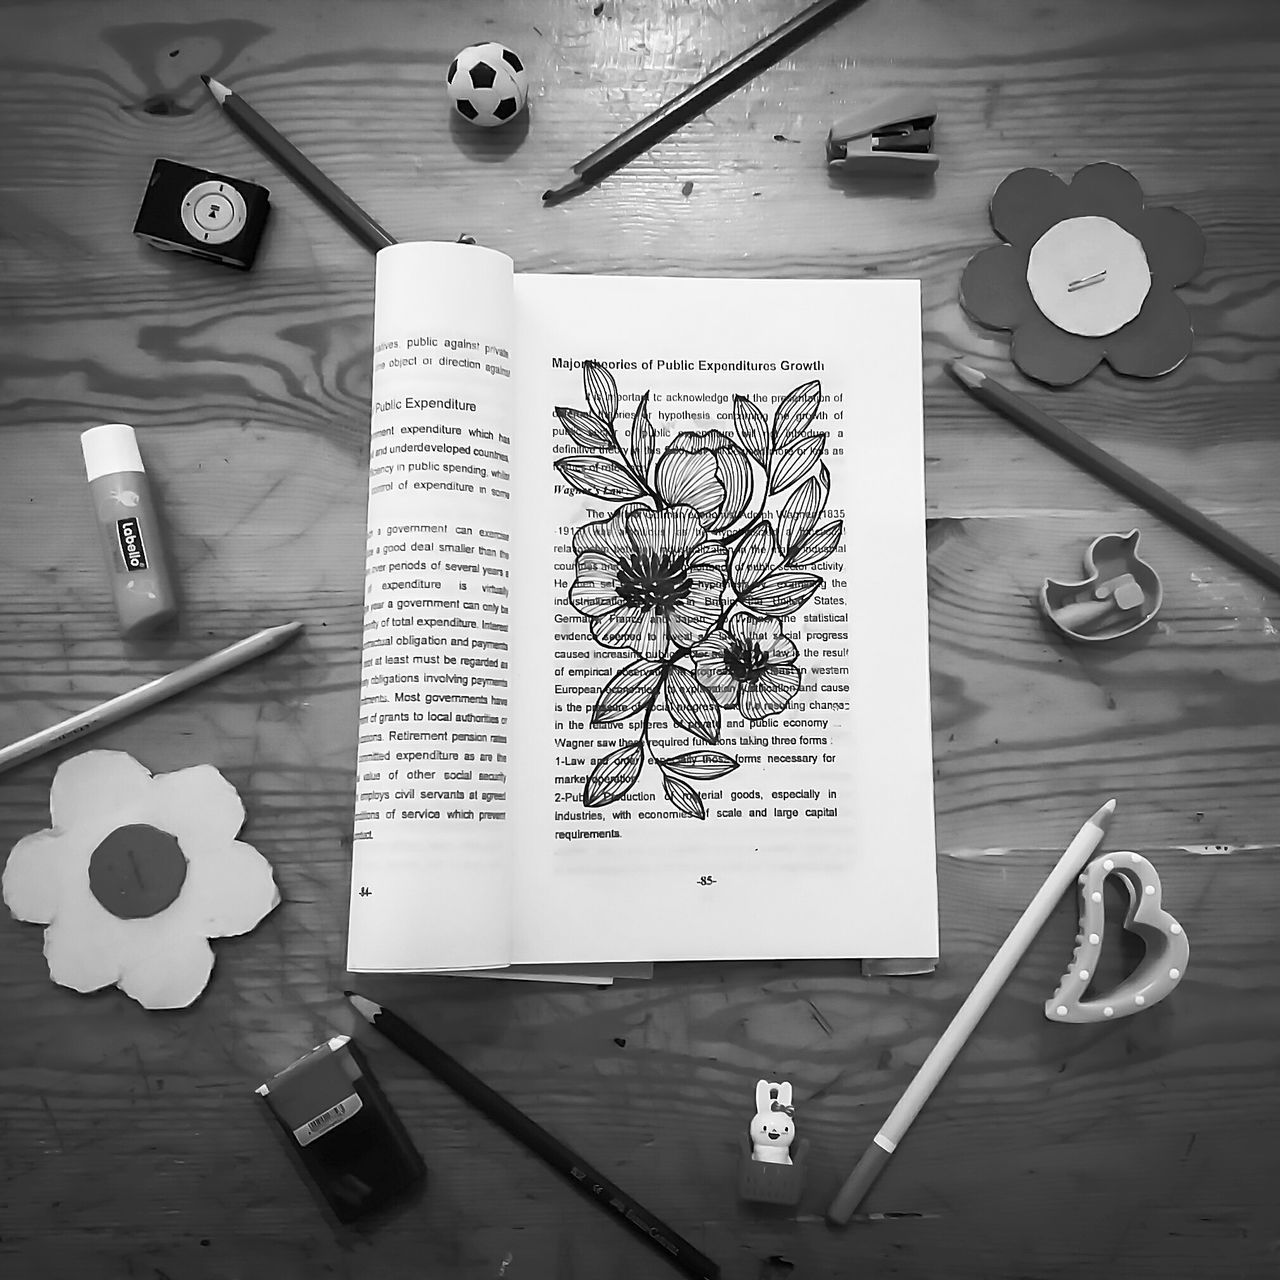 Pencil Wood - Material Indoors  No People Paper Drawing By Me Drawing Drawing Time Books Booklover Black And White Styling Photography Composition Messing Around Mess Elements Of Decor Arranged Objects Object Photography Doodle Doodle Art EyeEmNewHere